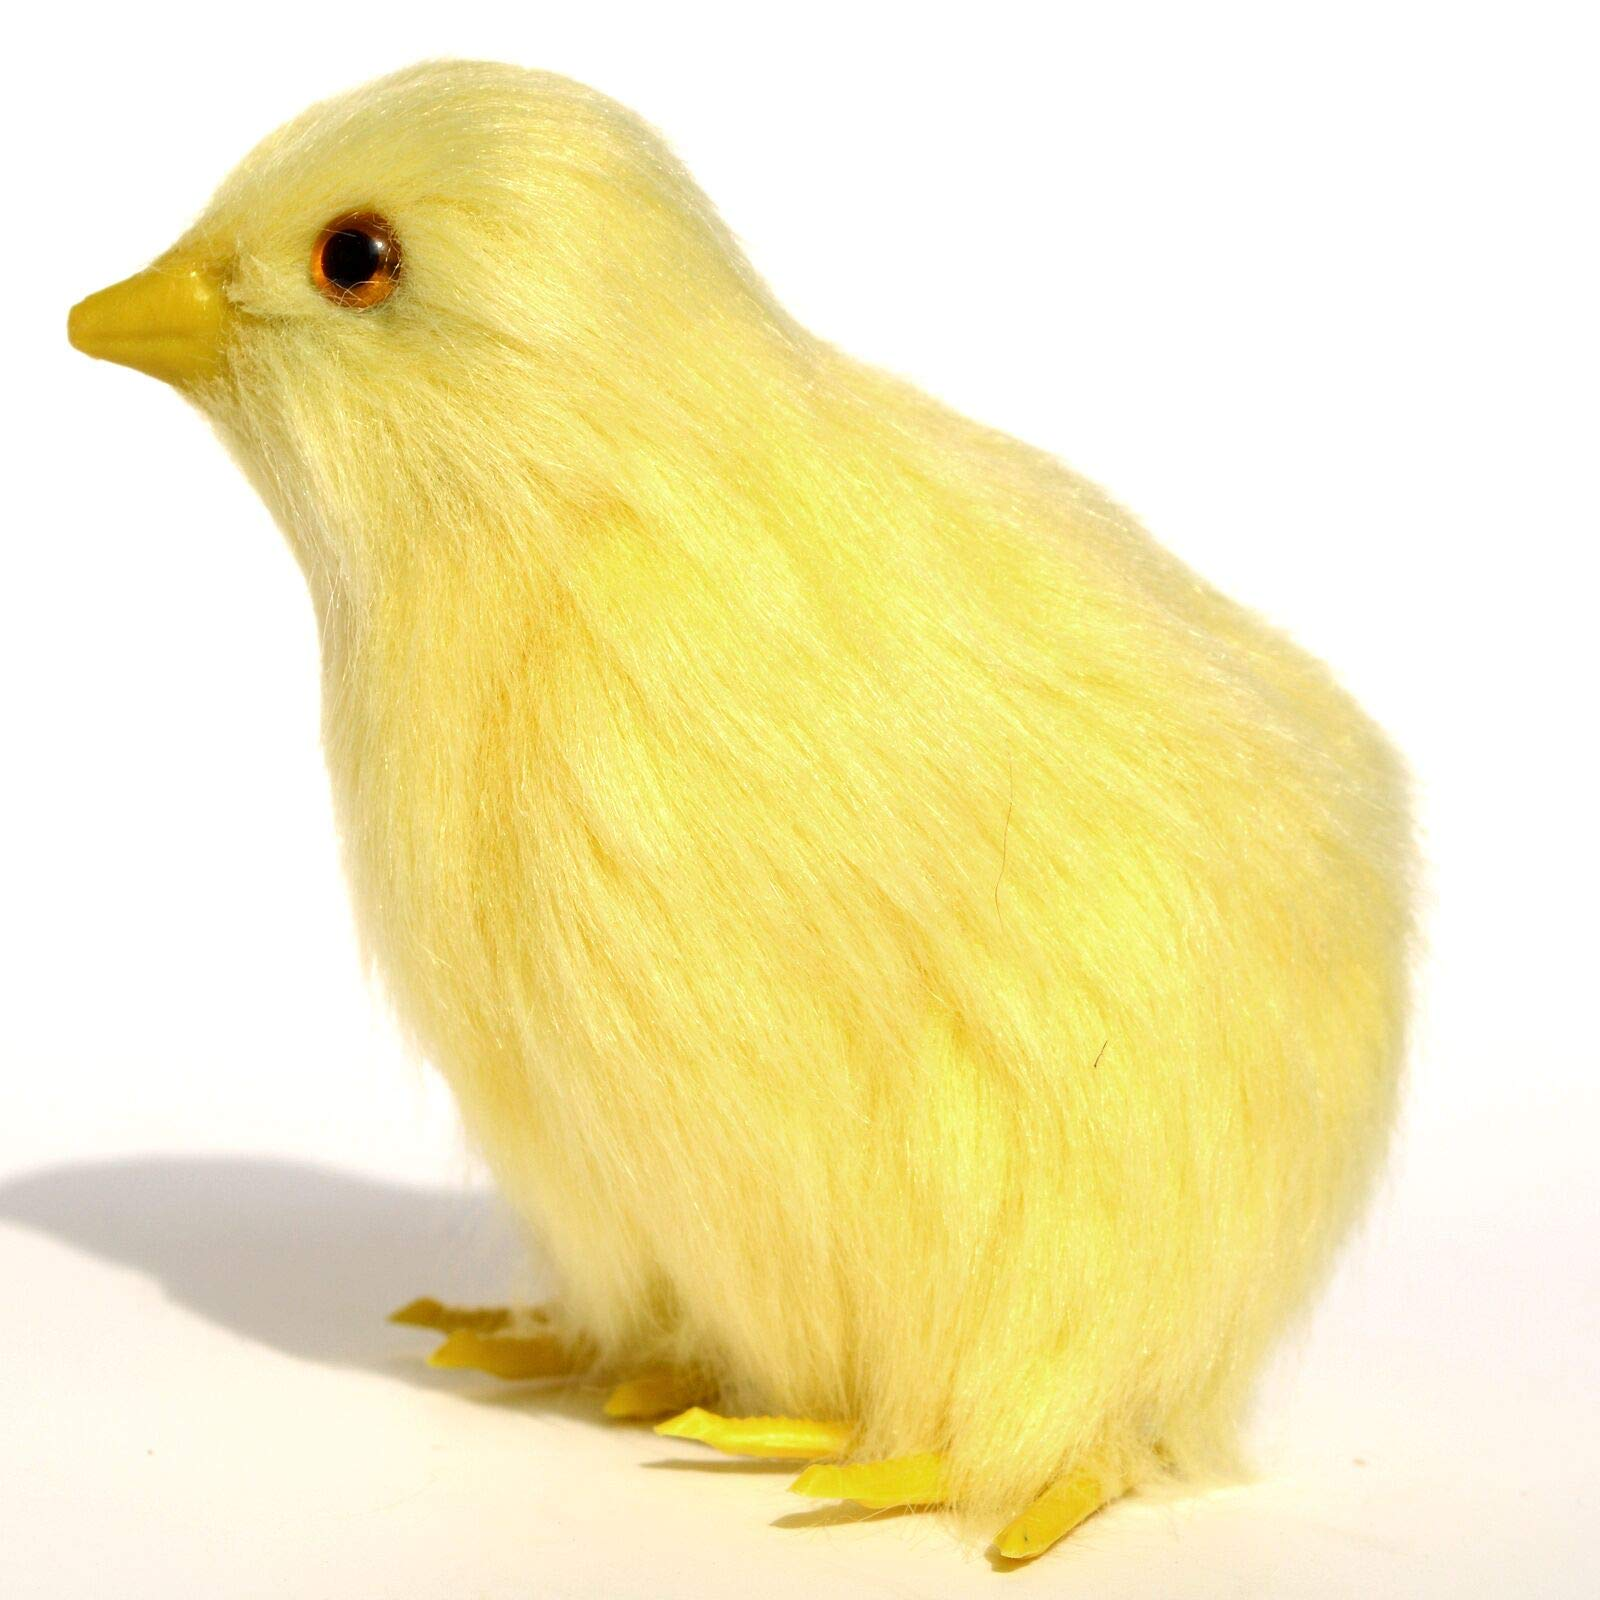 wisdomway*trade 4 pcs Spring Easter Chick Decor Realistic Lifelike Easter Yellow Baby Chick Plush Furry Animal Spring Decor Figurine Chicken Rabbit Fur Plush Animal Toy Easter Holiday Decoration